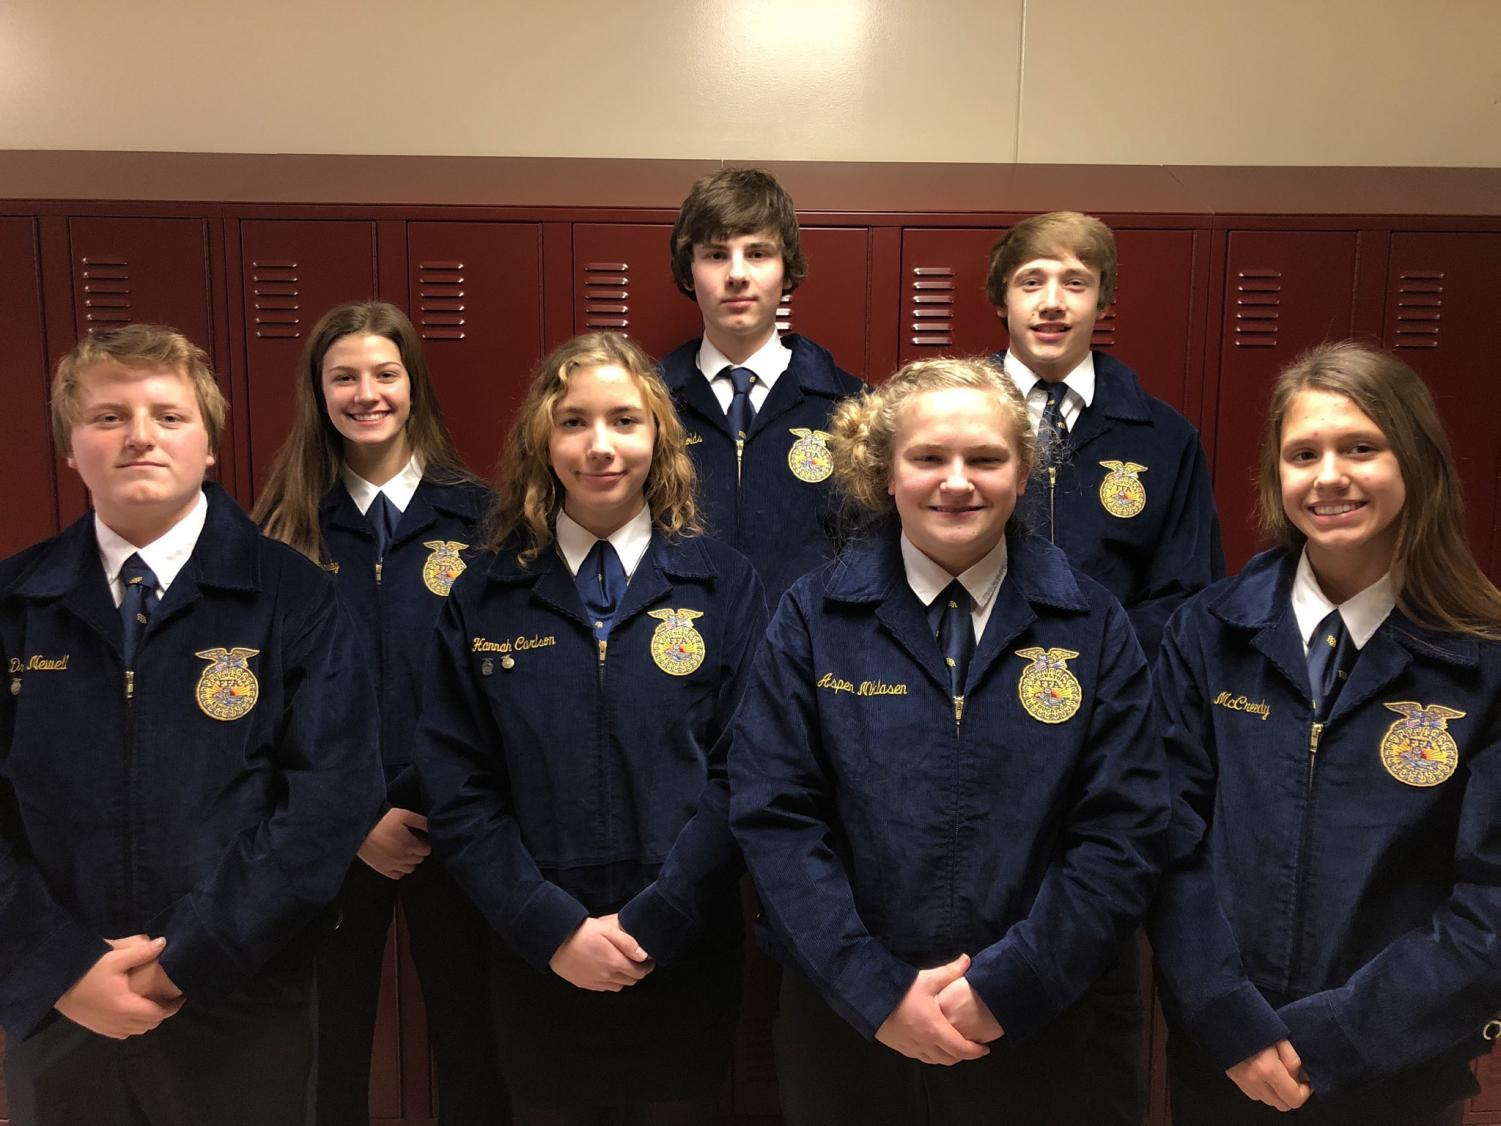 CONDUCTING BUSINESS - Drey Newell, Alyssa Derby, Hannah Carlson, Garrett Reynolds, Aspen Niklasen, Skyler Handlos and Taylor McCreedy made up the conduct team for the 2019 Southwest District CDE's. At the end of the day, the group placed fifth.